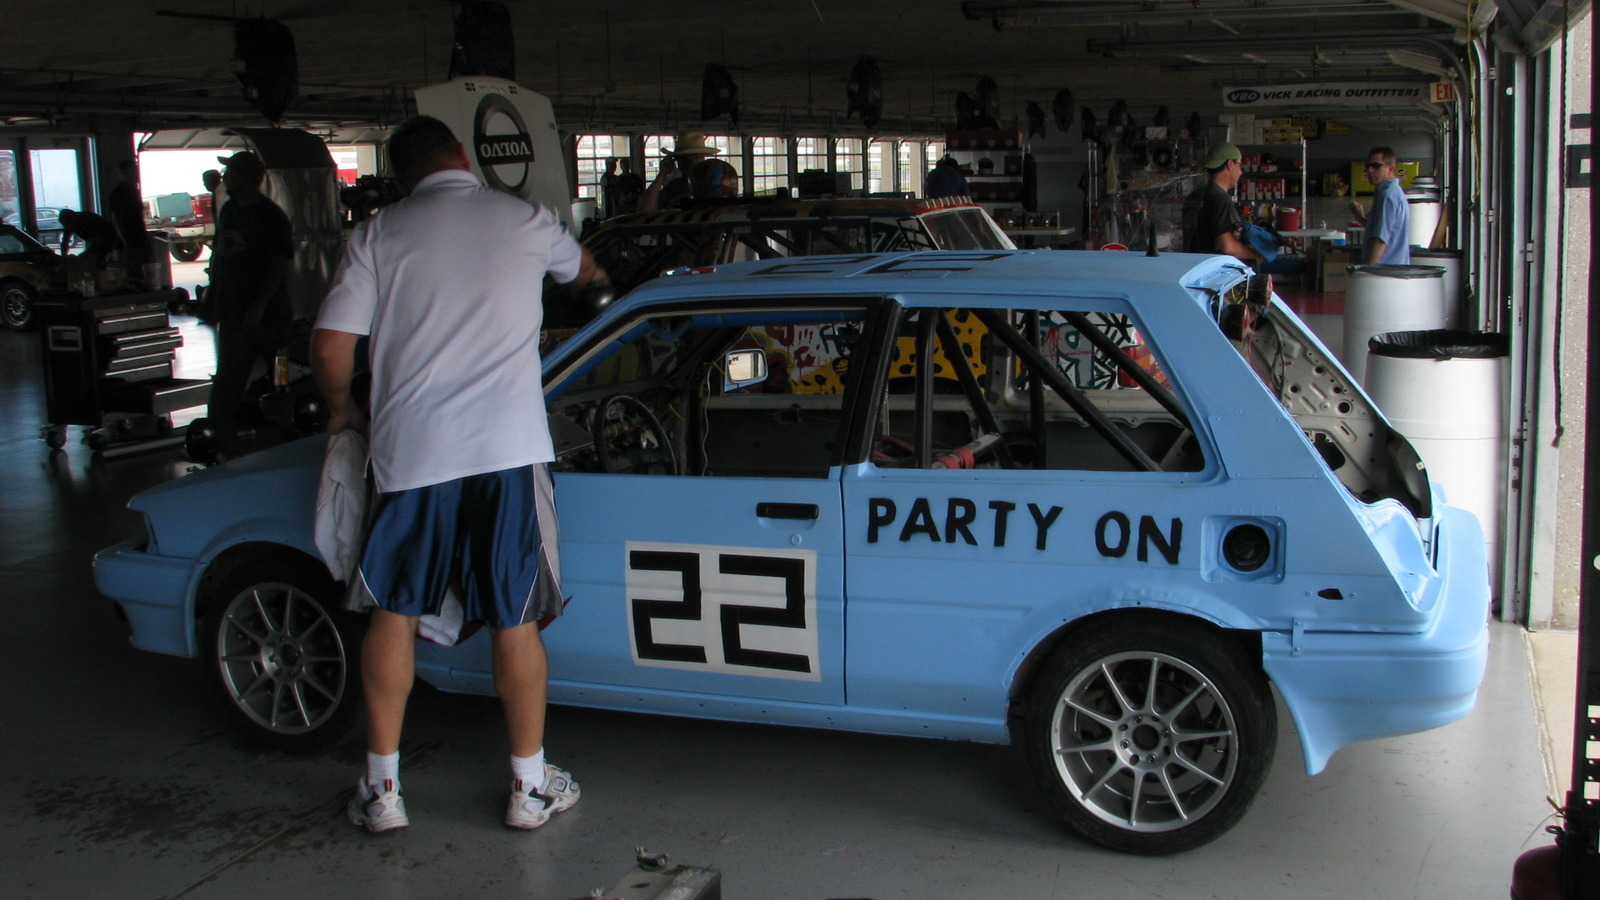 2010 Chumpcar Texas Motor Speedway, Friday Garage Photos